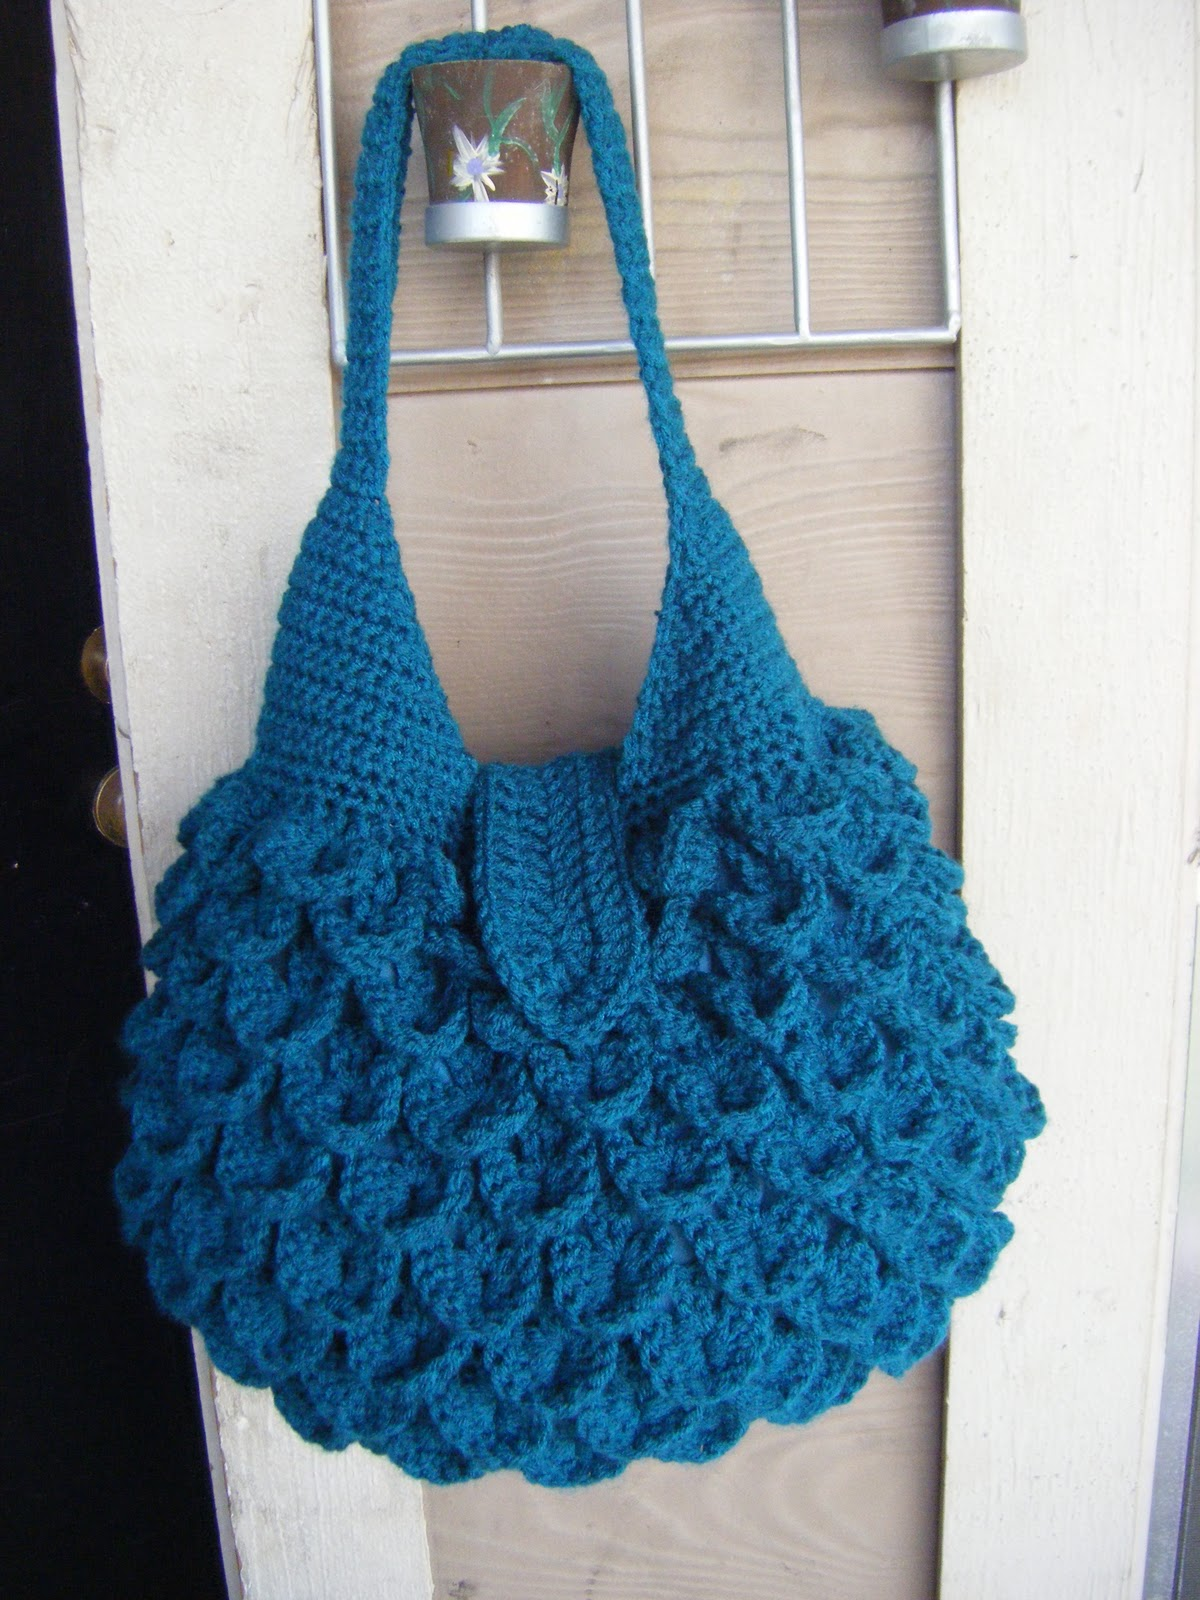 Crochet Bag Tutorial : Best Patterns: Crocodile Crochet Bag PATTERN